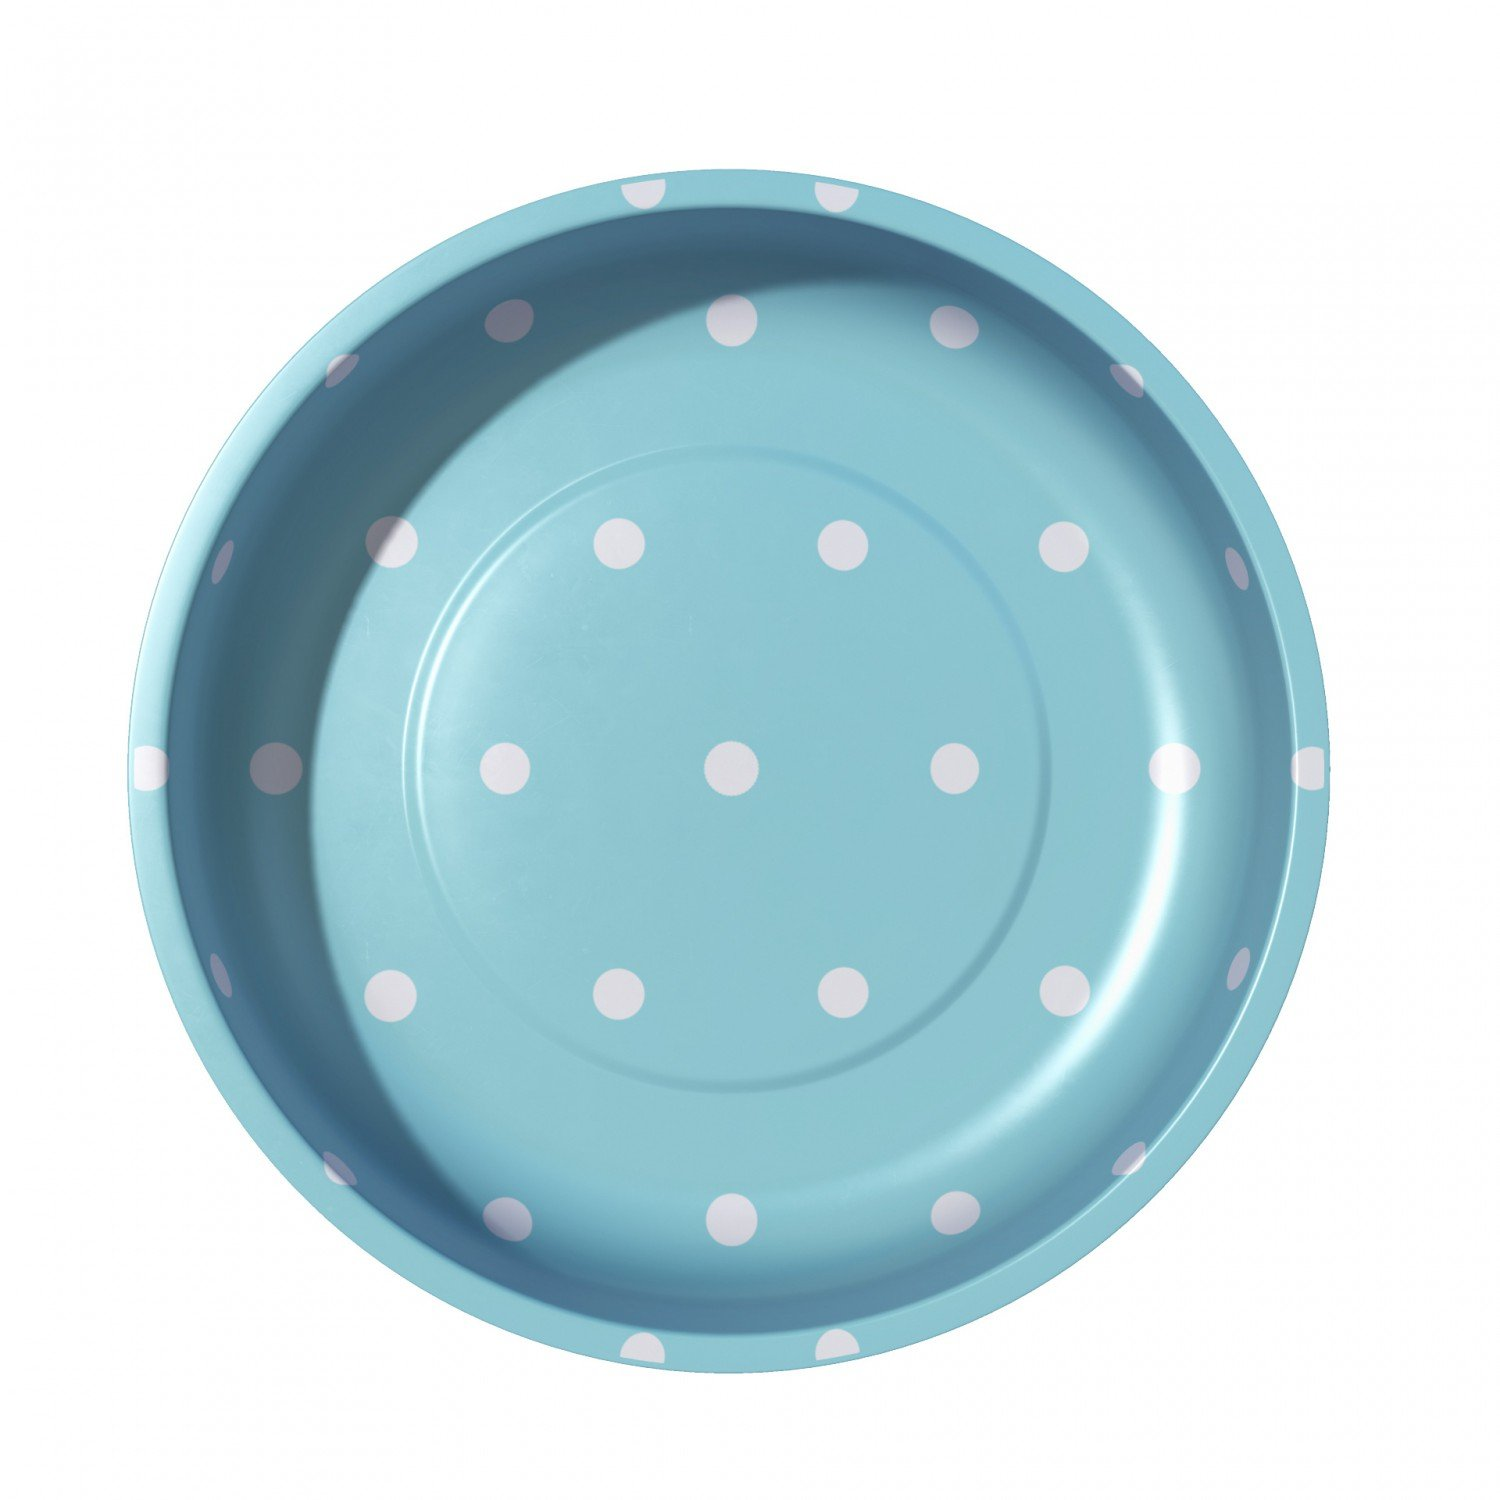 Sew Together Magnetic Pin Bowl Polka Dots Aqua